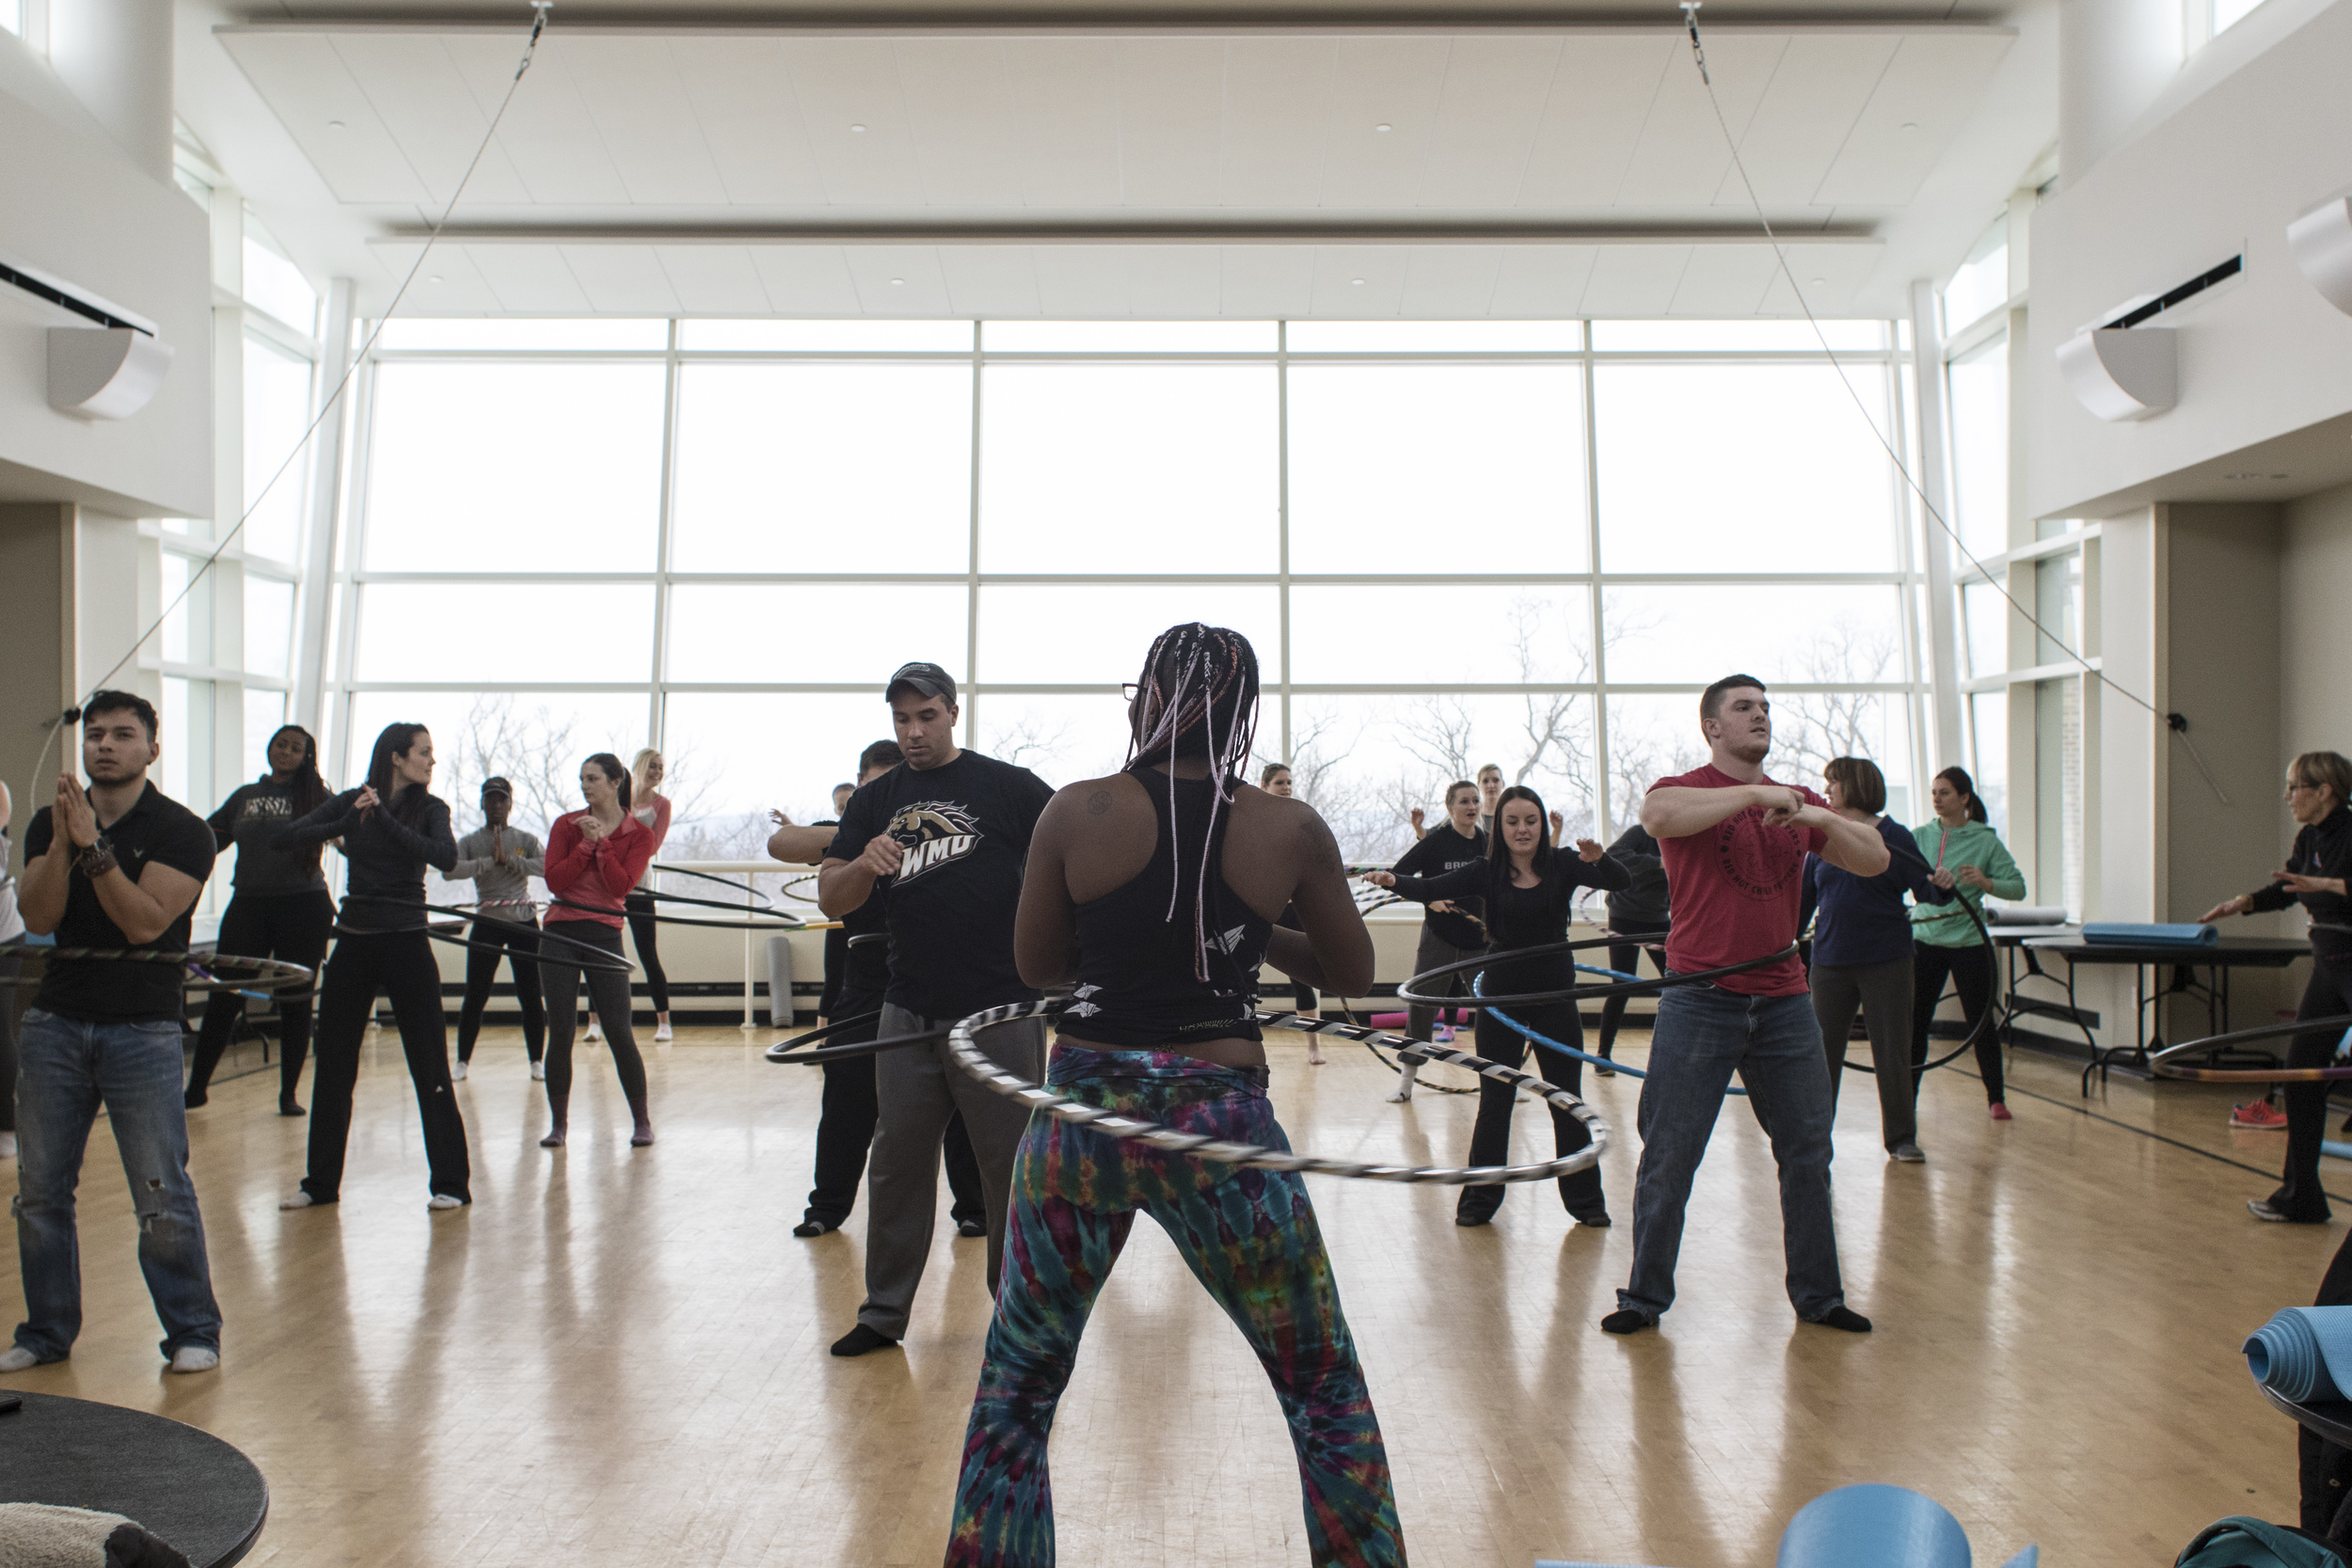 Shani led students in learning to waist hoop, offering tips to keep it circling, maintain balance, control, and correct stance and hip movement.